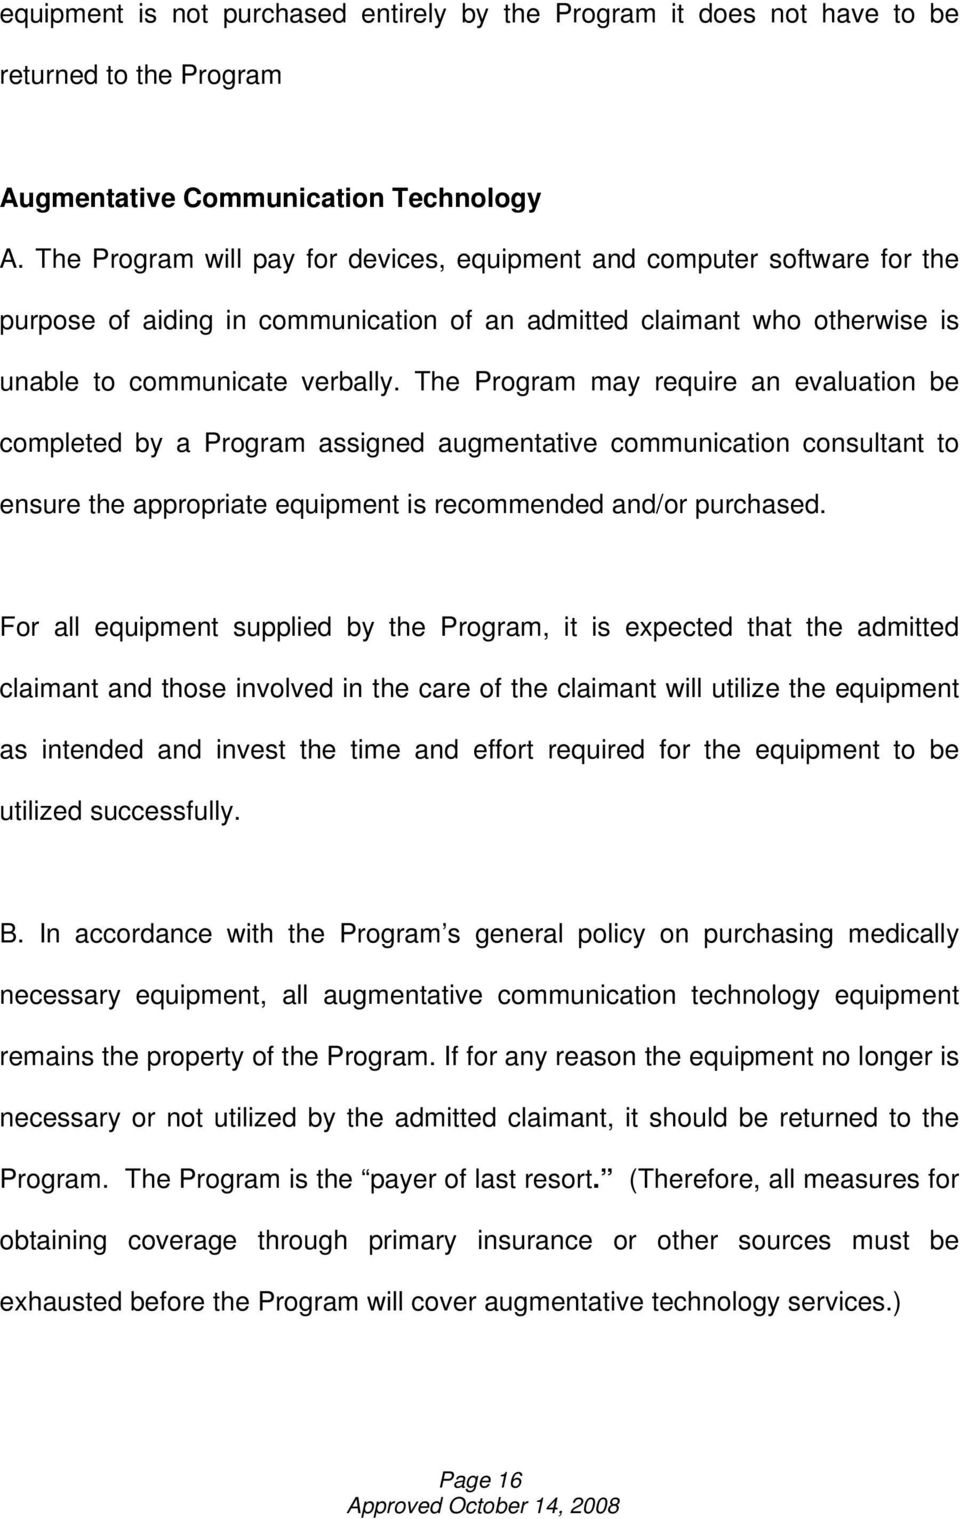 The Program may require an evaluation be completed by a Program assigned augmentative communication consultant to ensure the appropriate equipment is recommended and/or purchased.